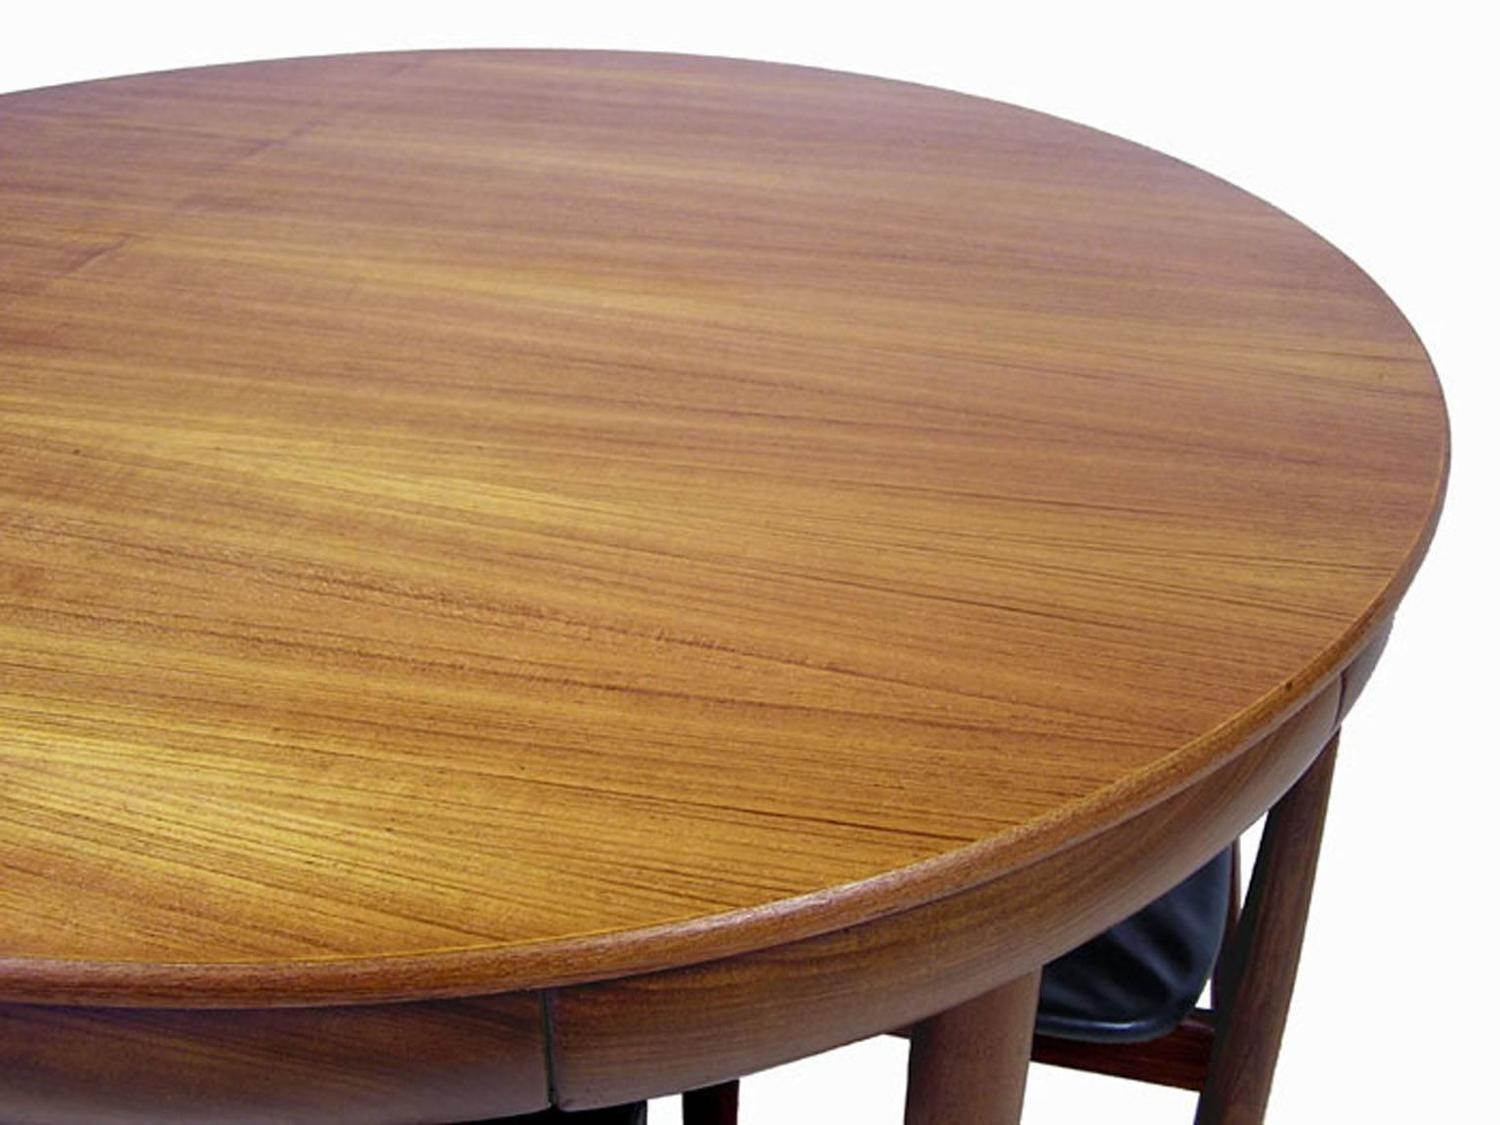 1960s Hans Olsen Teak Dining Table and Chairs, Denmark at ...